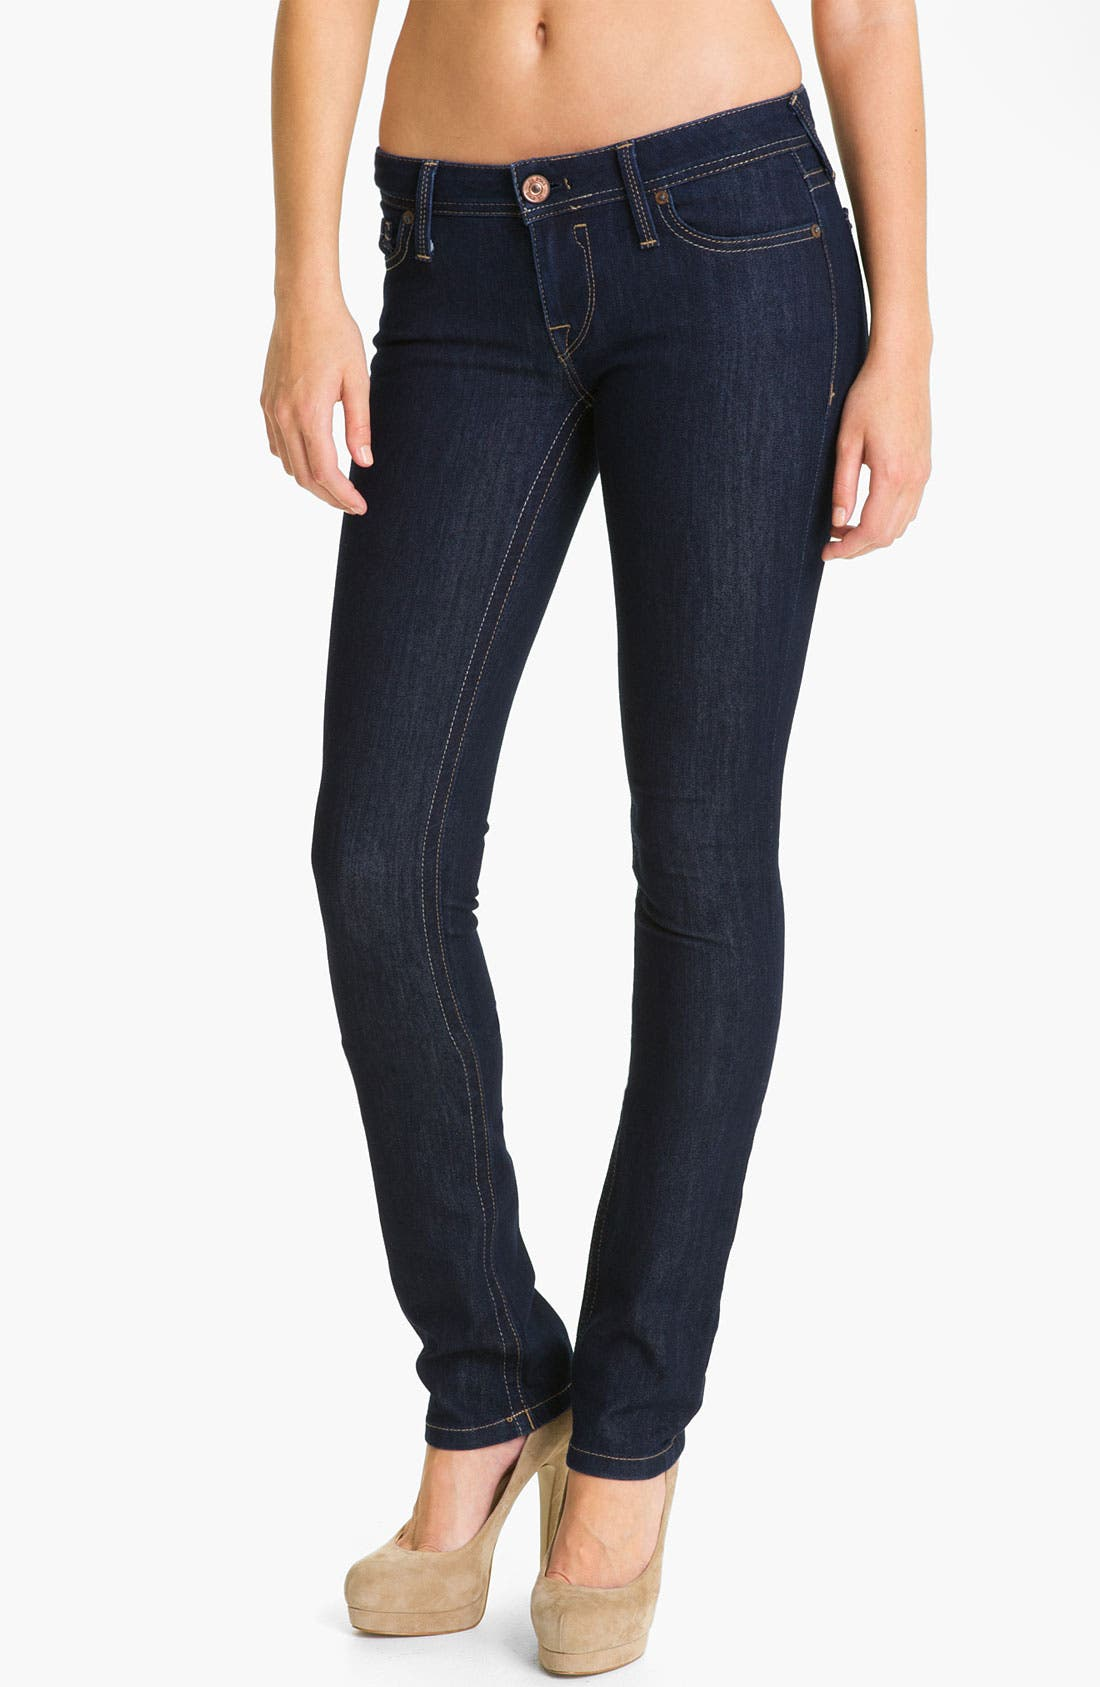 Alternate Image 1 Selected - DL1961 'Kate' X-Fit Stretch Denim Slim Straight Leg Jeans (Twilight Wash)